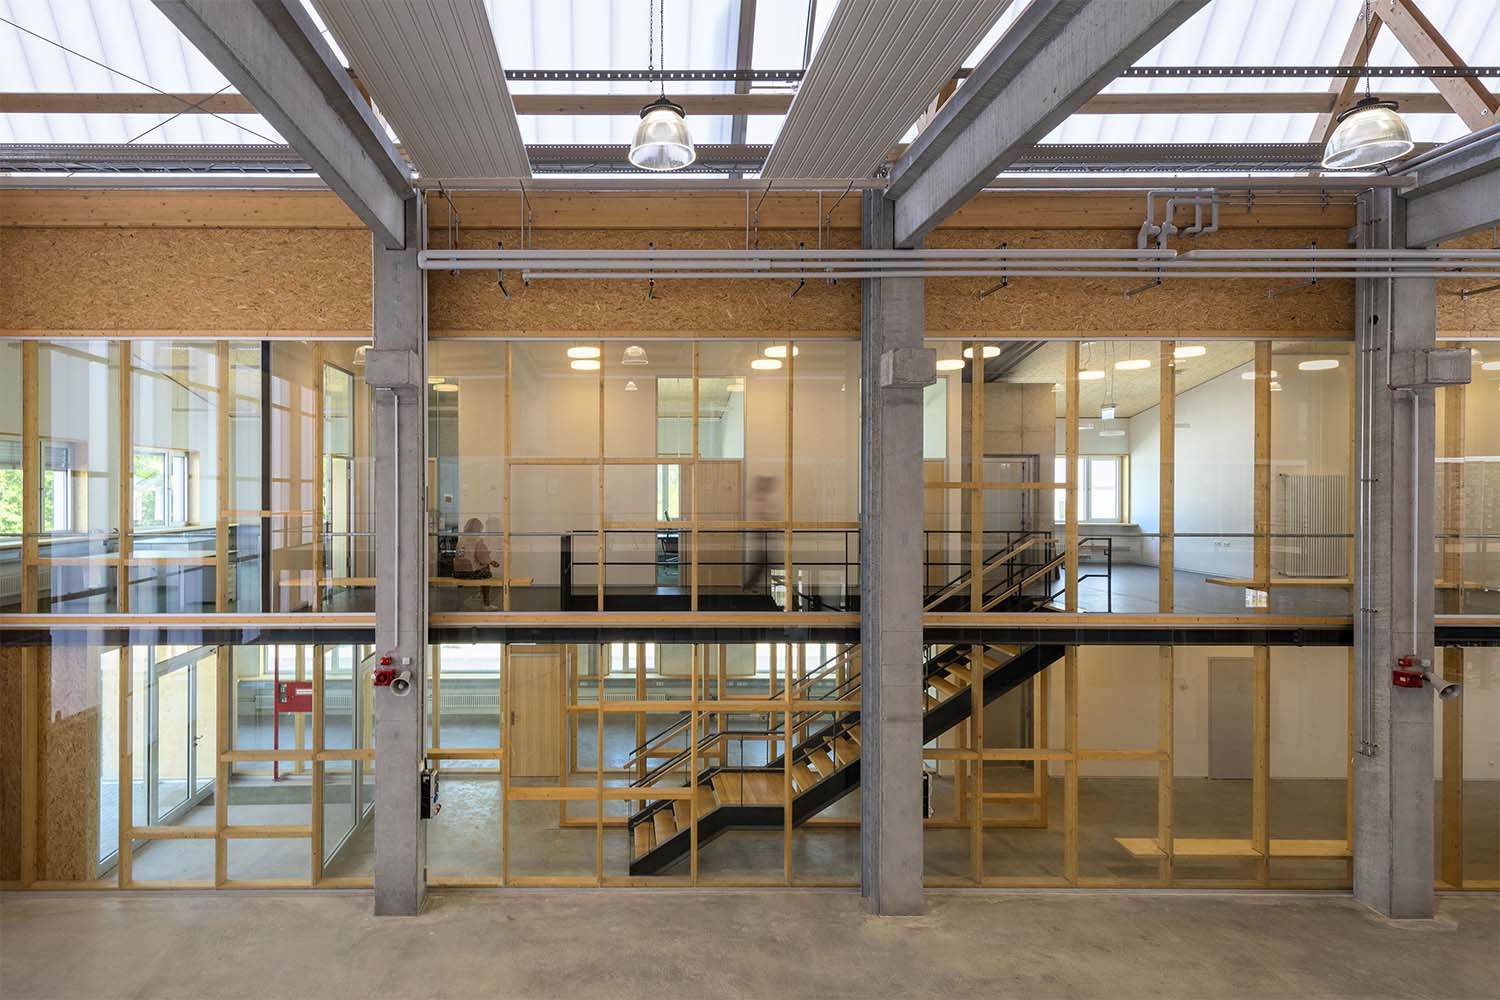 In the building centre, a stairway and elevator lead to the upper storey. David Matthiessen